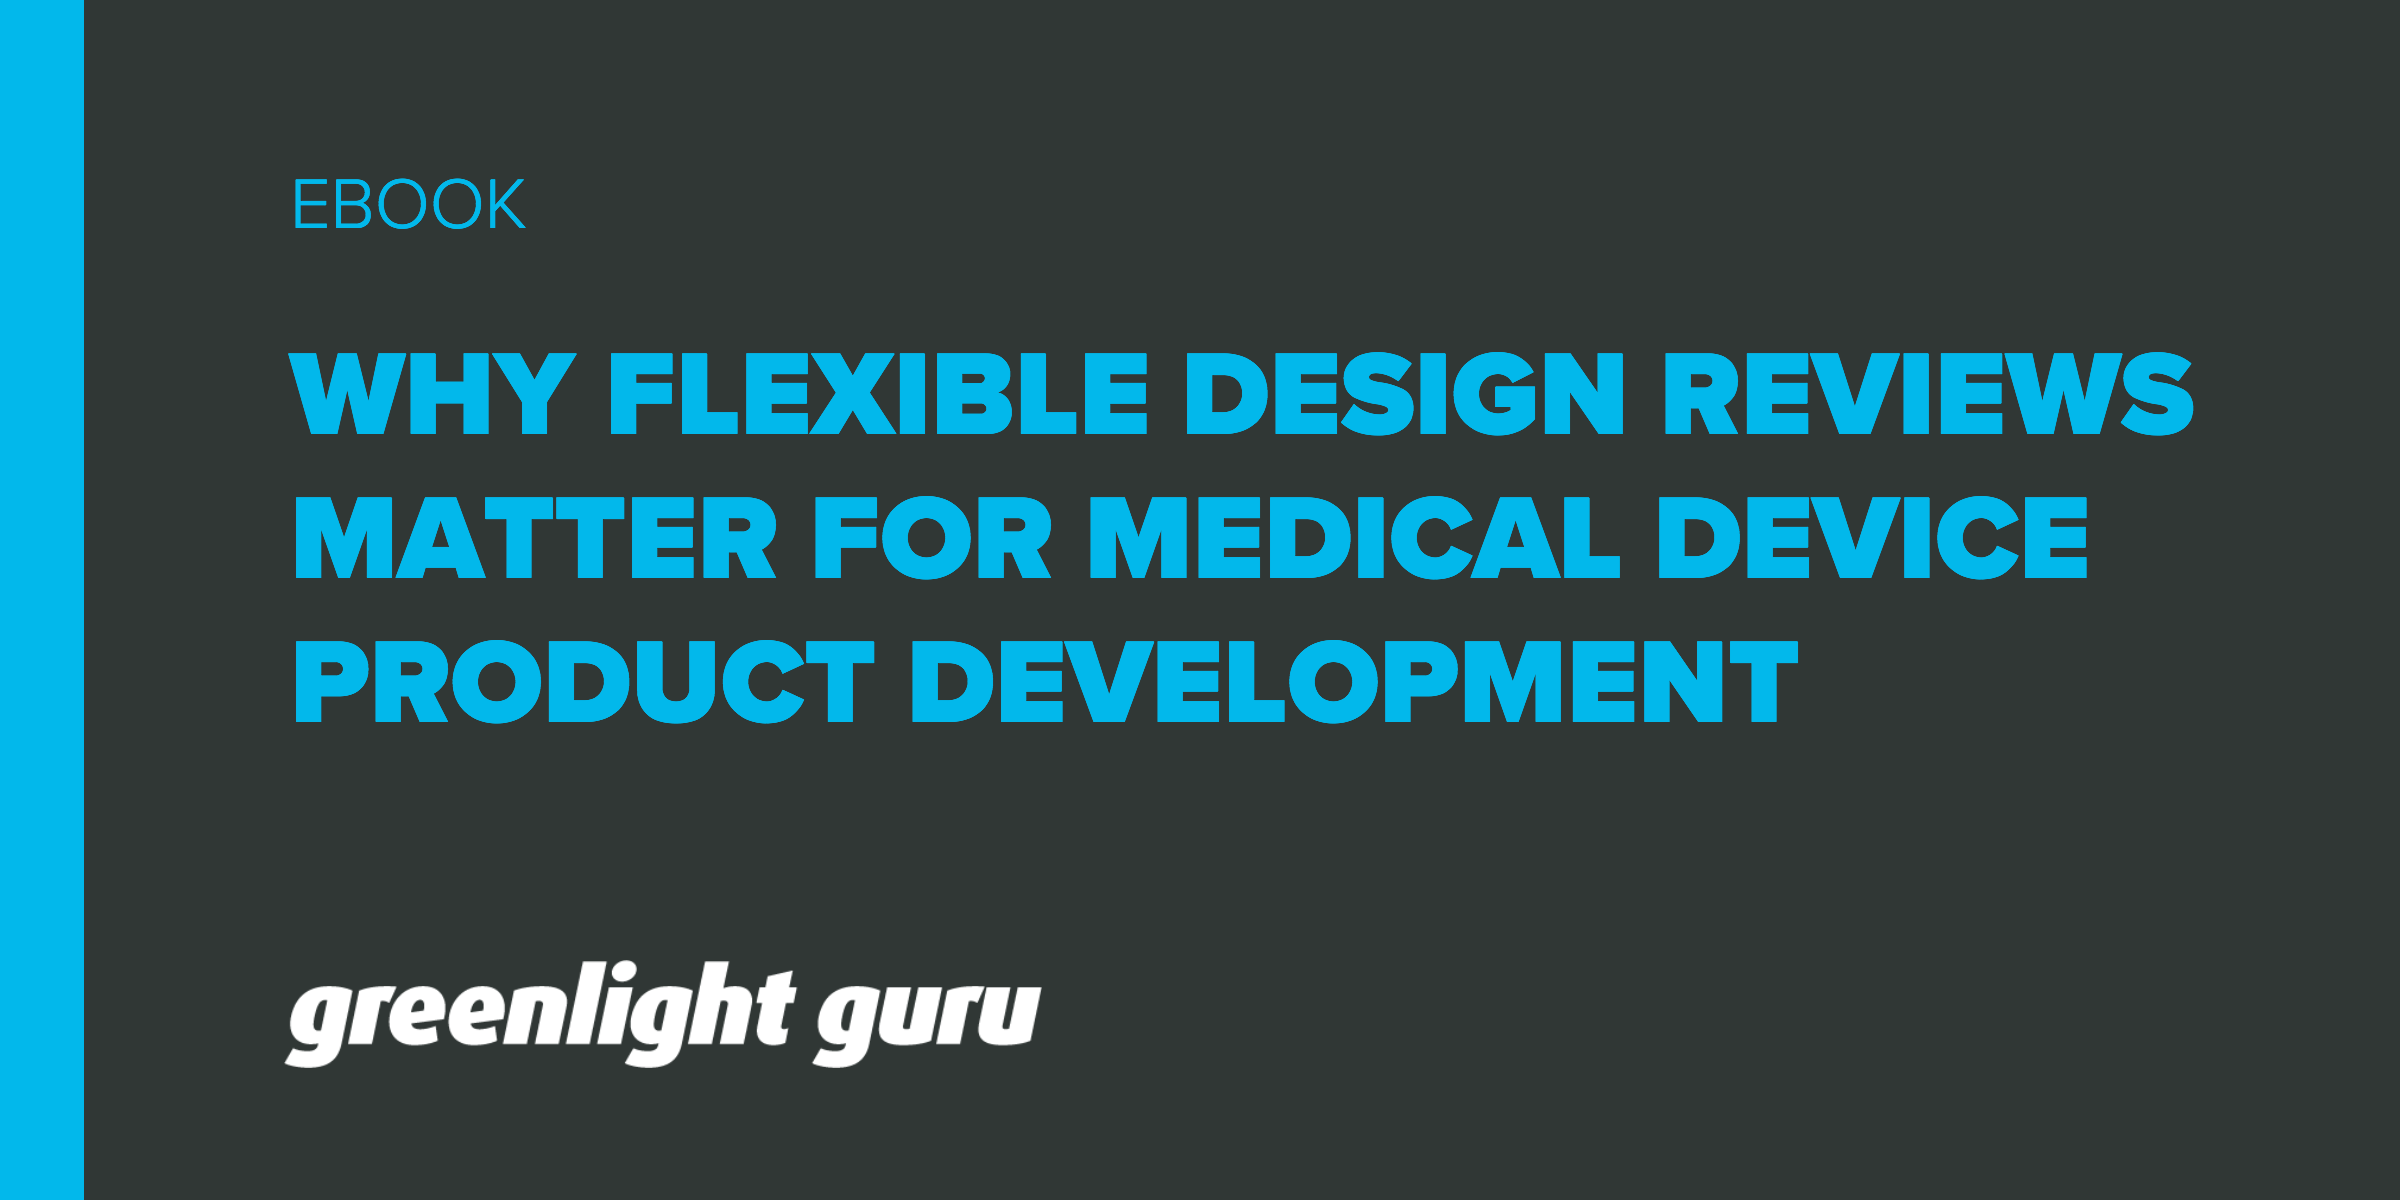 design_reviews_medical_devices